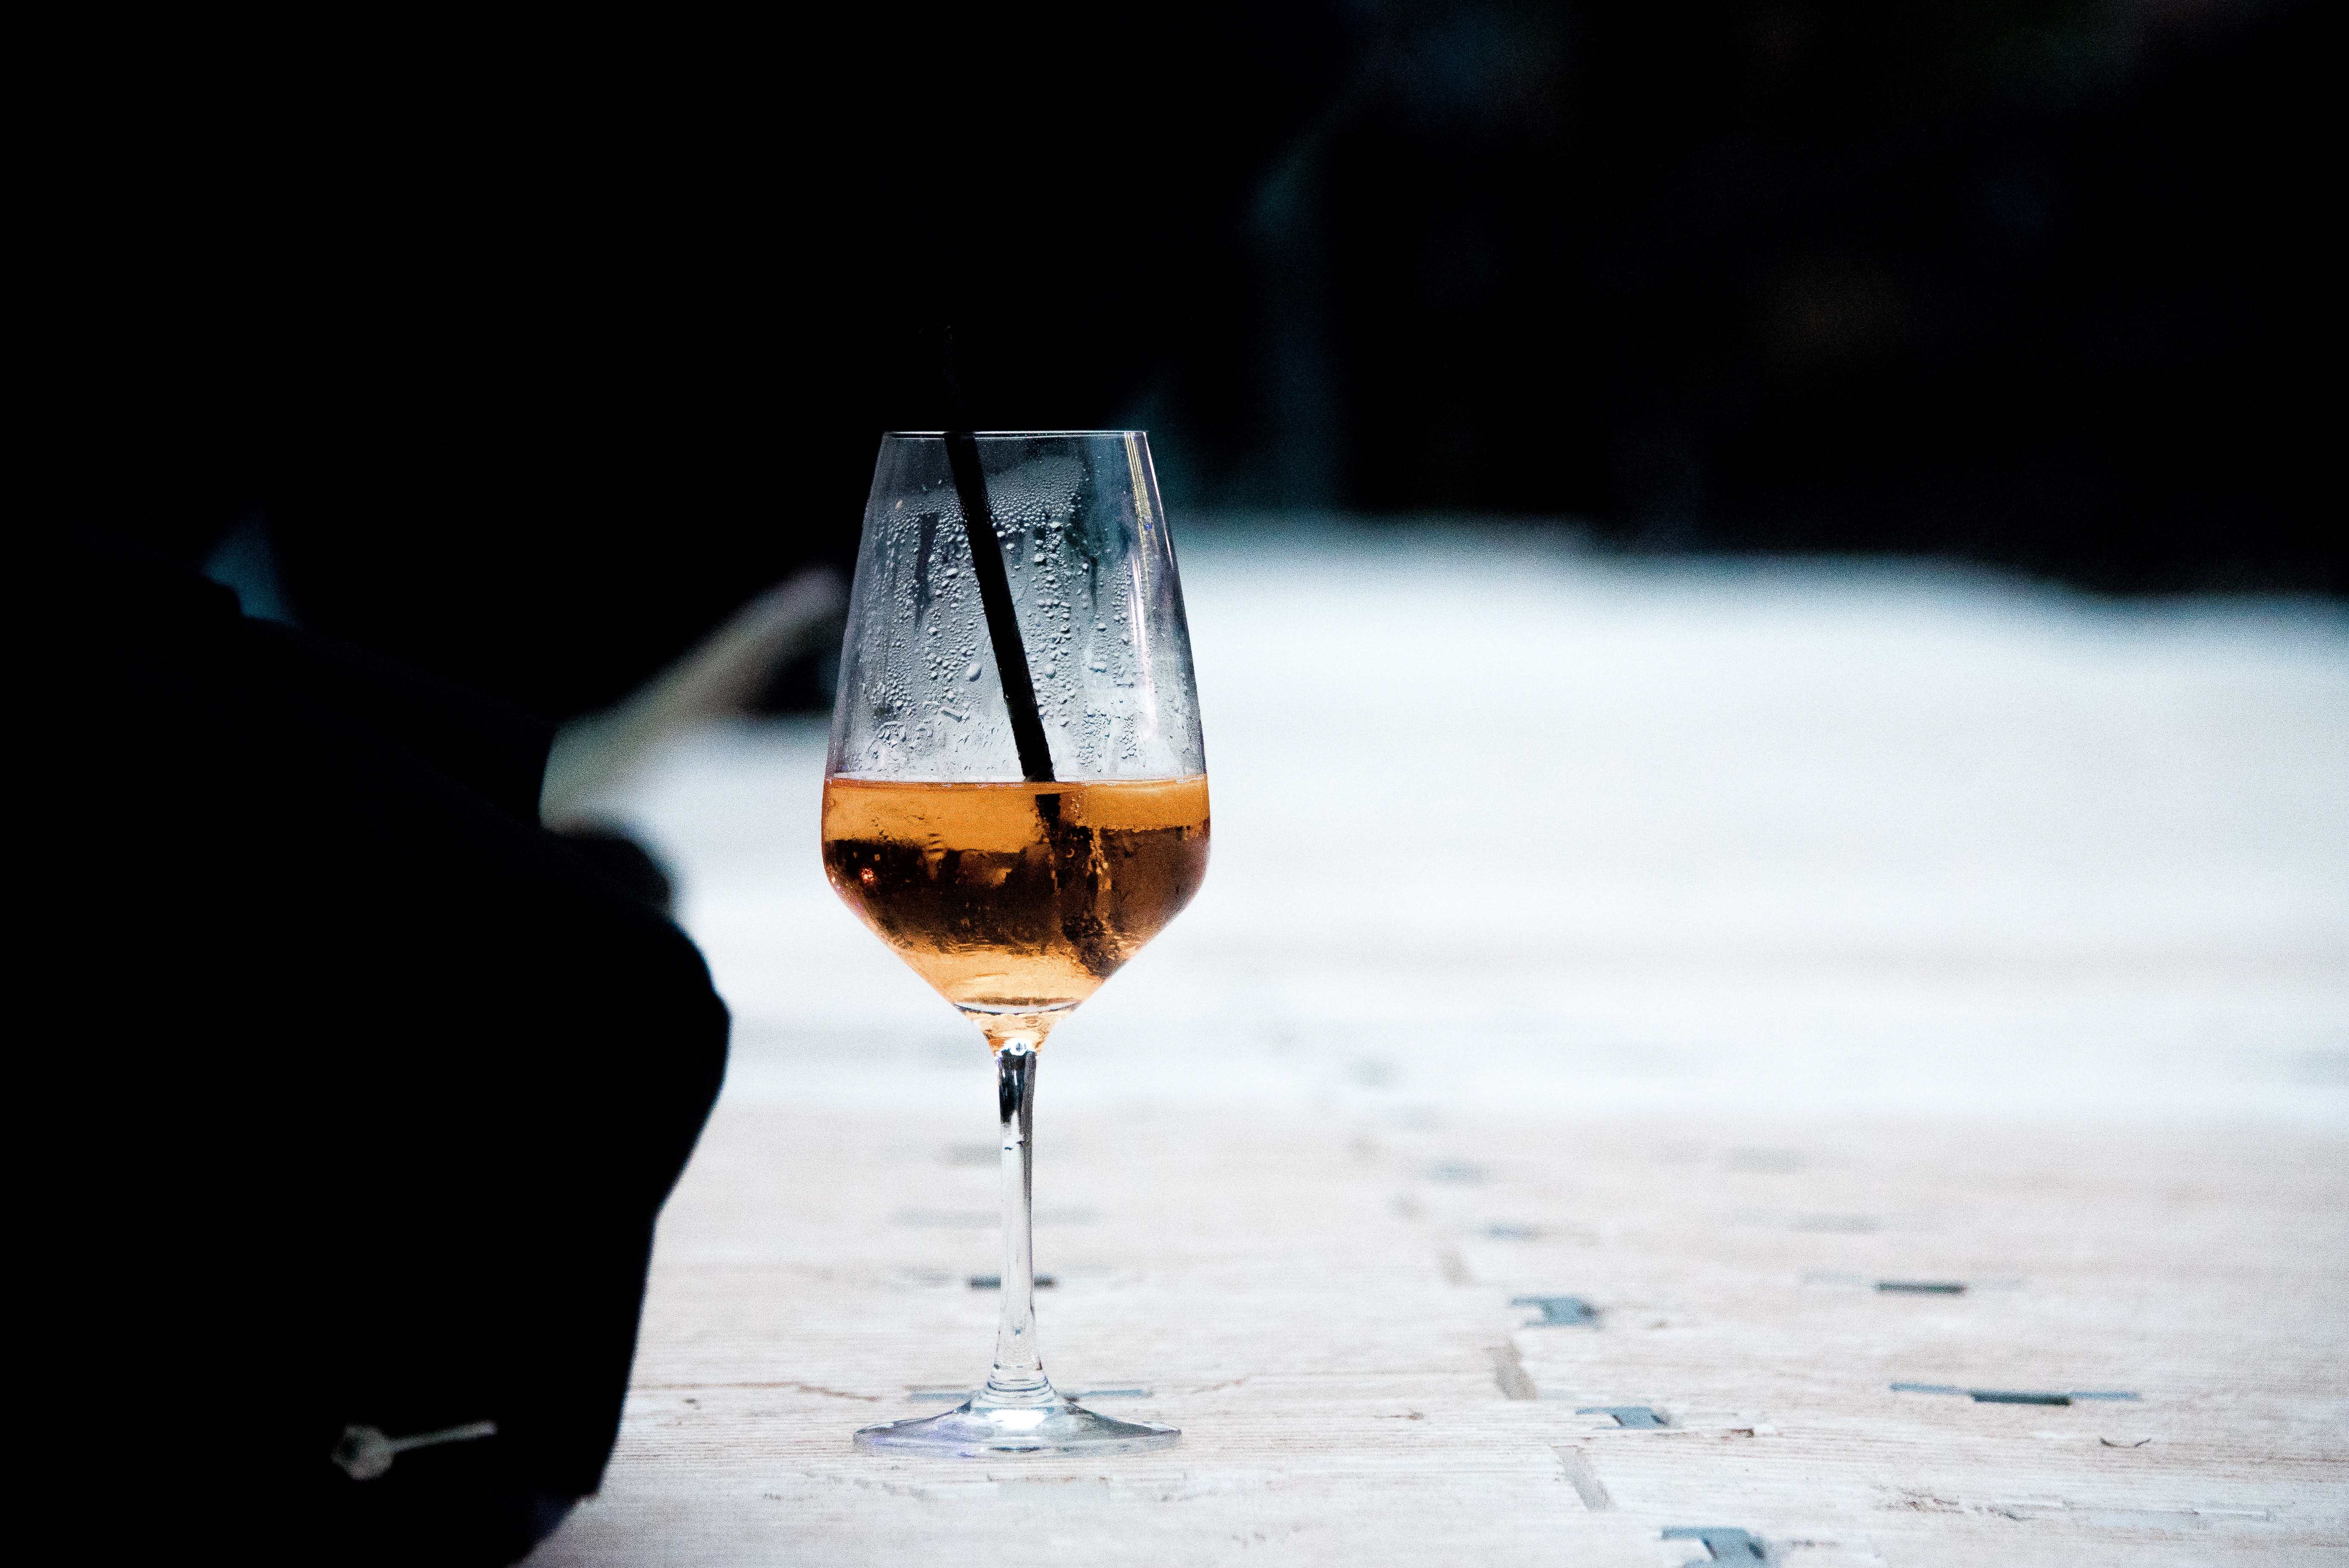 selective focus photography of half-empty wine glass on the floor